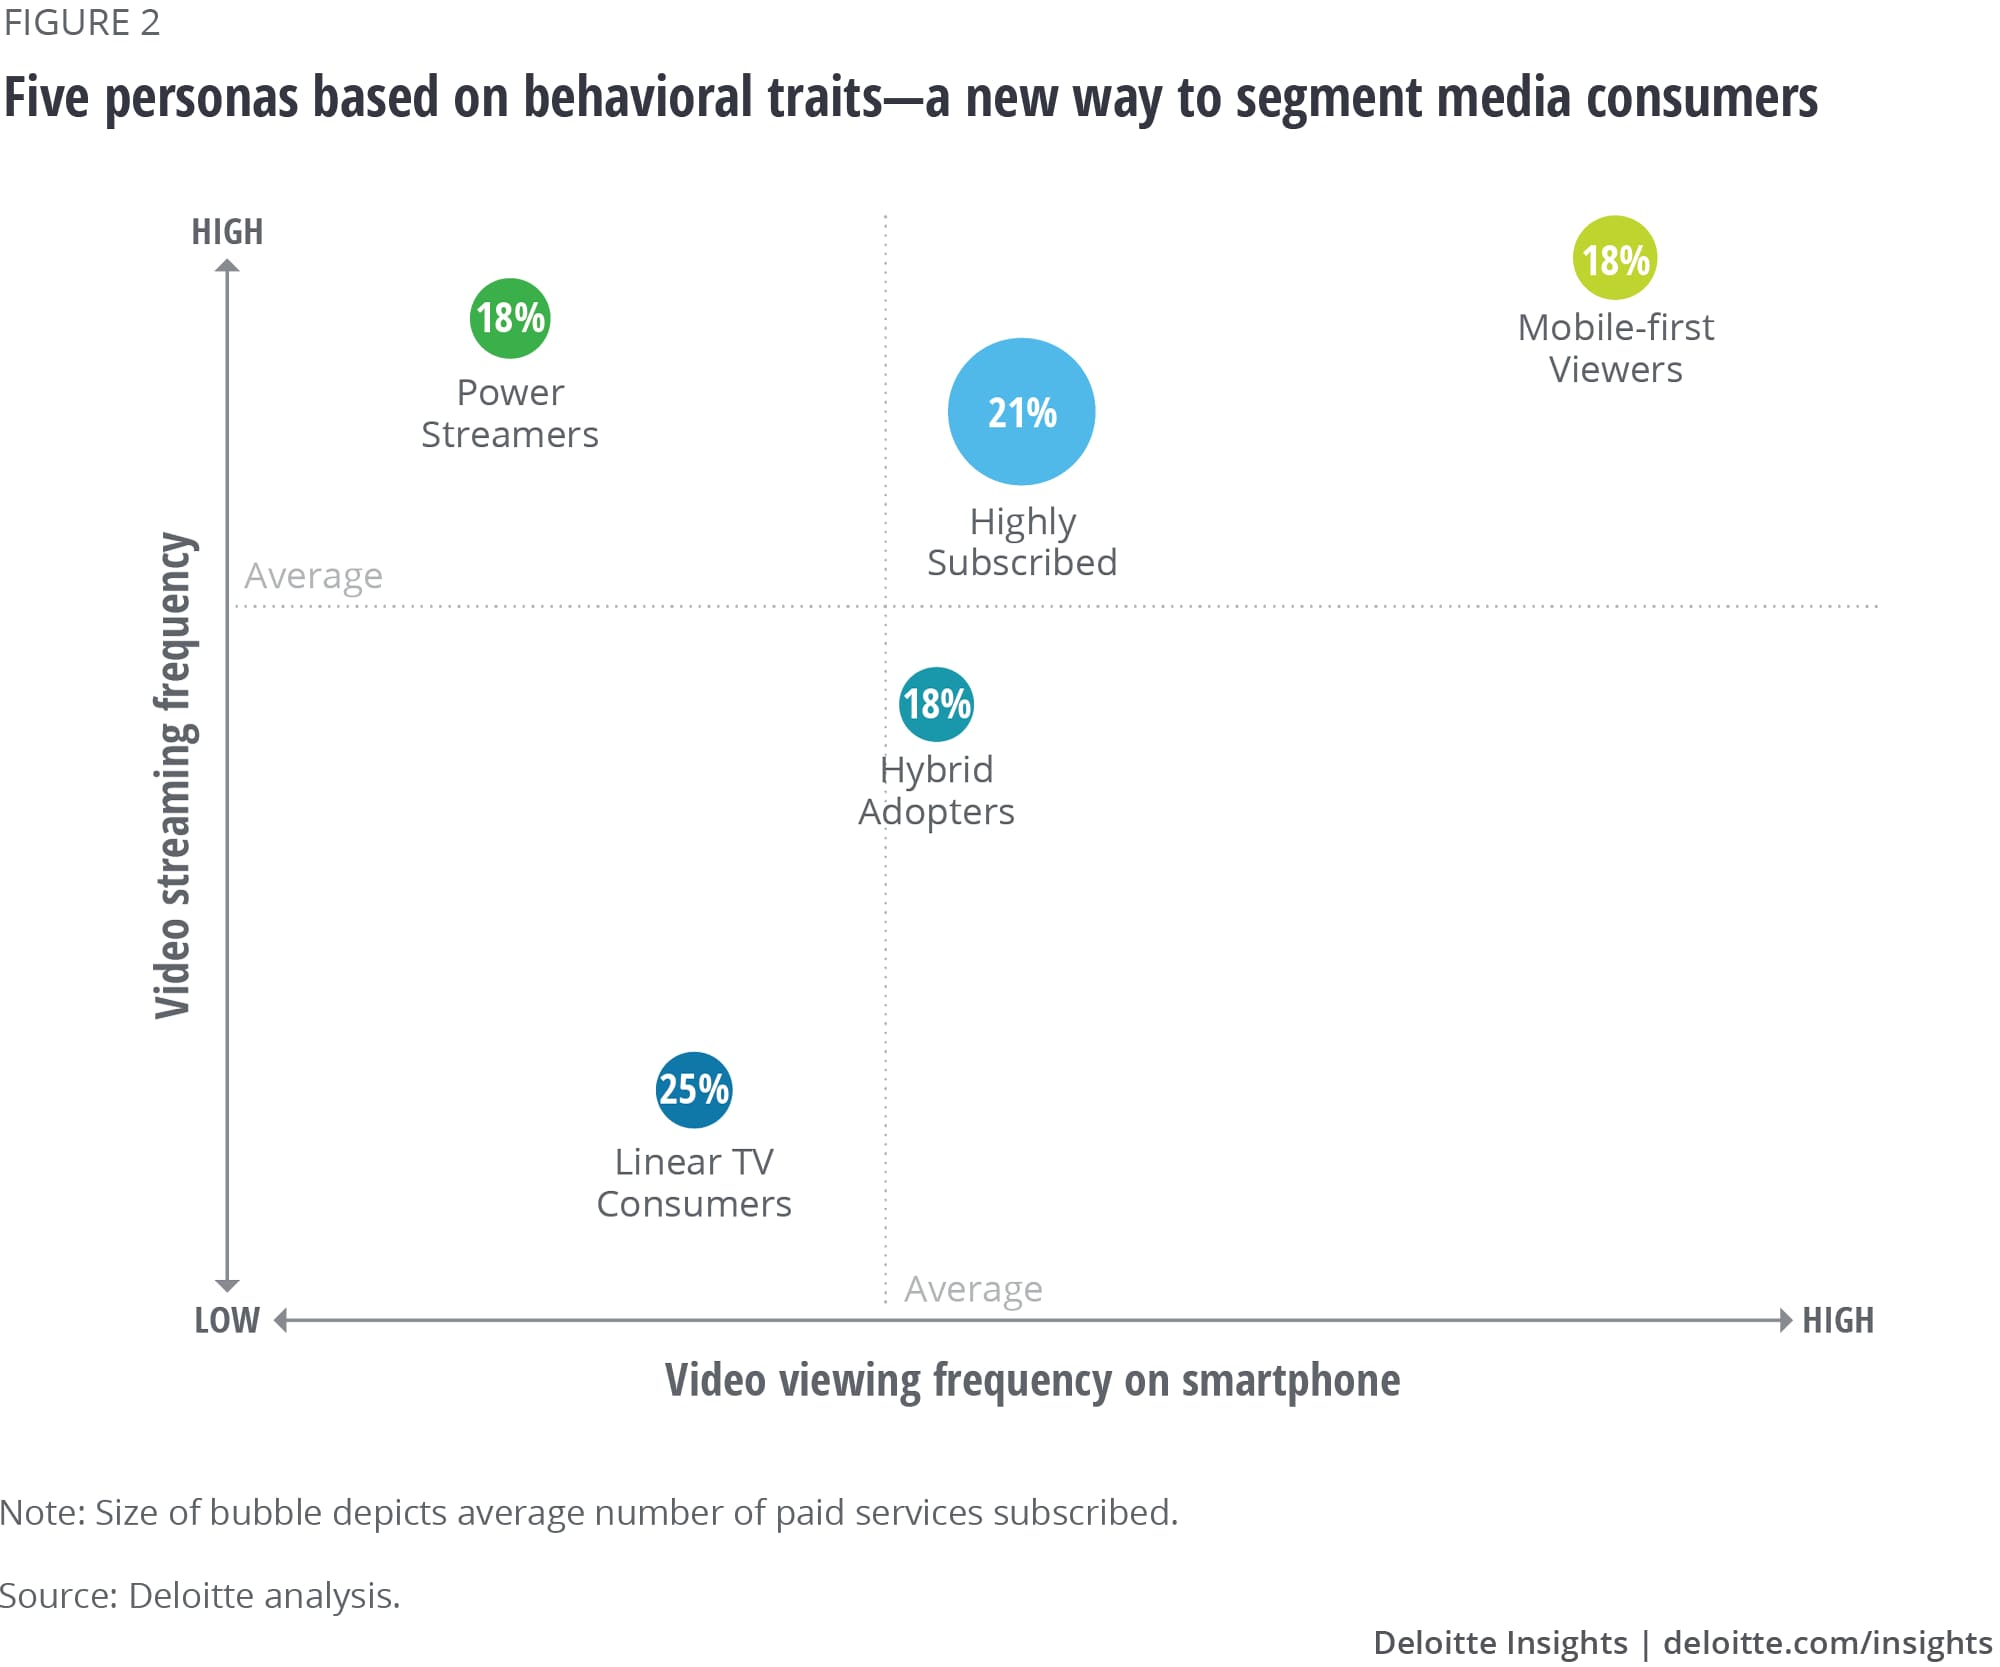 Five personas based on behavioral traits—a new way to segment media consumers